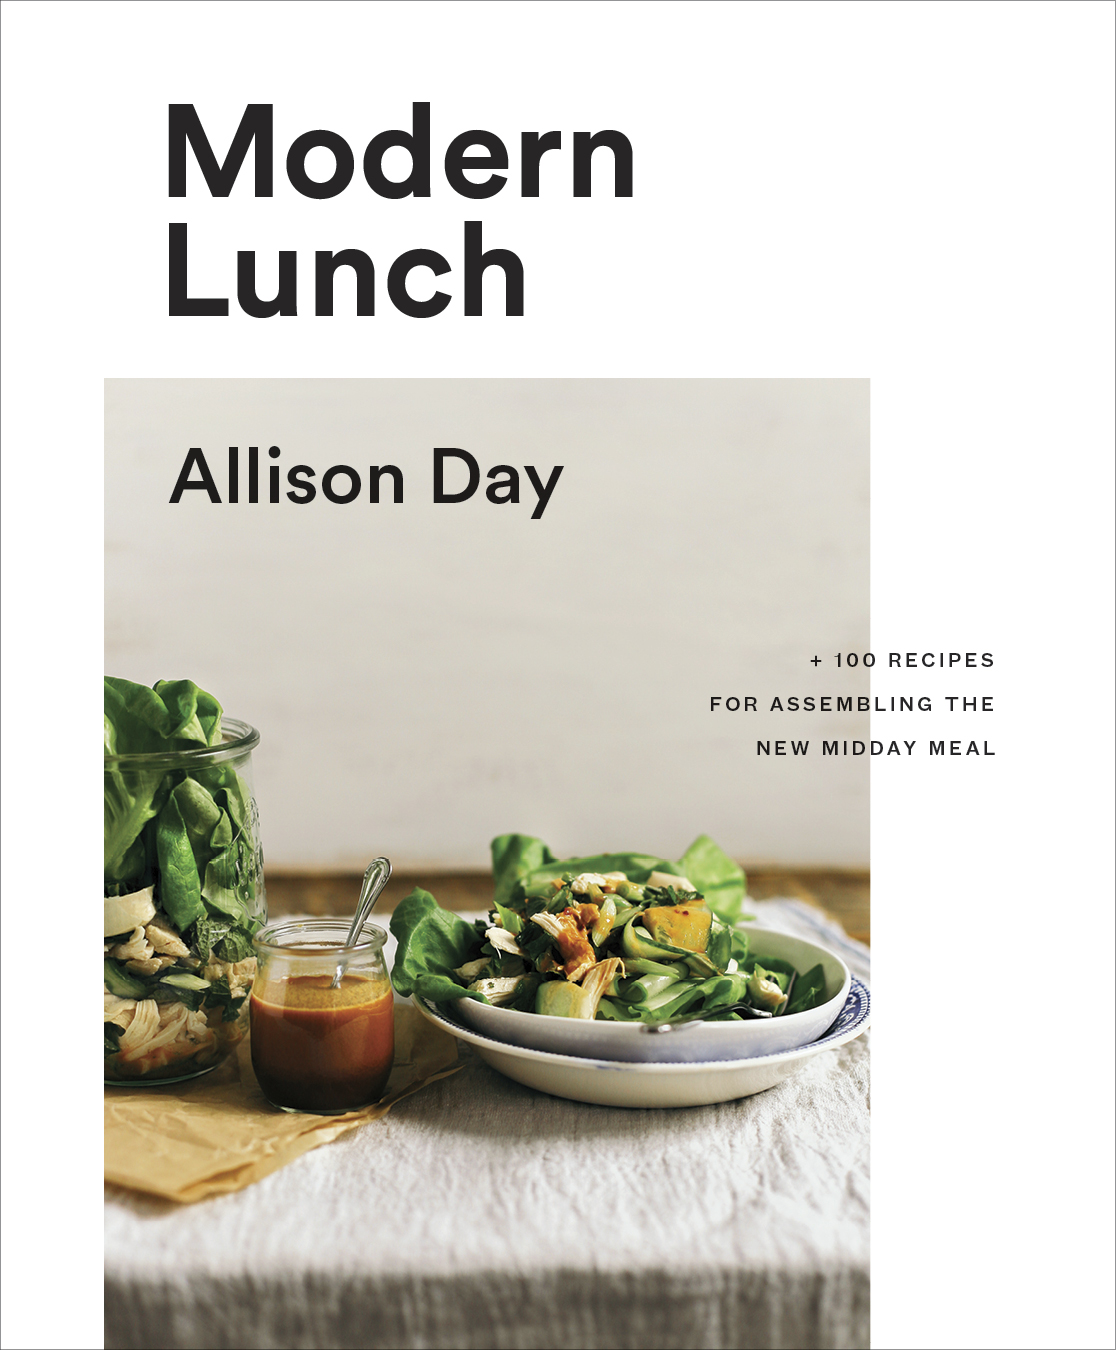 Modern Lunch - By Allison DayAn Indigo best seller, Heather's Pick, best of the month selection, and cookbook of the month.Modern Lunch is the new lunchtime hero for time-strapped, budget-conscious, and salad-fatigued people everywhere. Focusing on healthy, quick–and, yes, Instagrammable–recipes, Allison takes readers on a feasting journey inspired by fresh flavors and ingredients, her travels, and minimal effort.